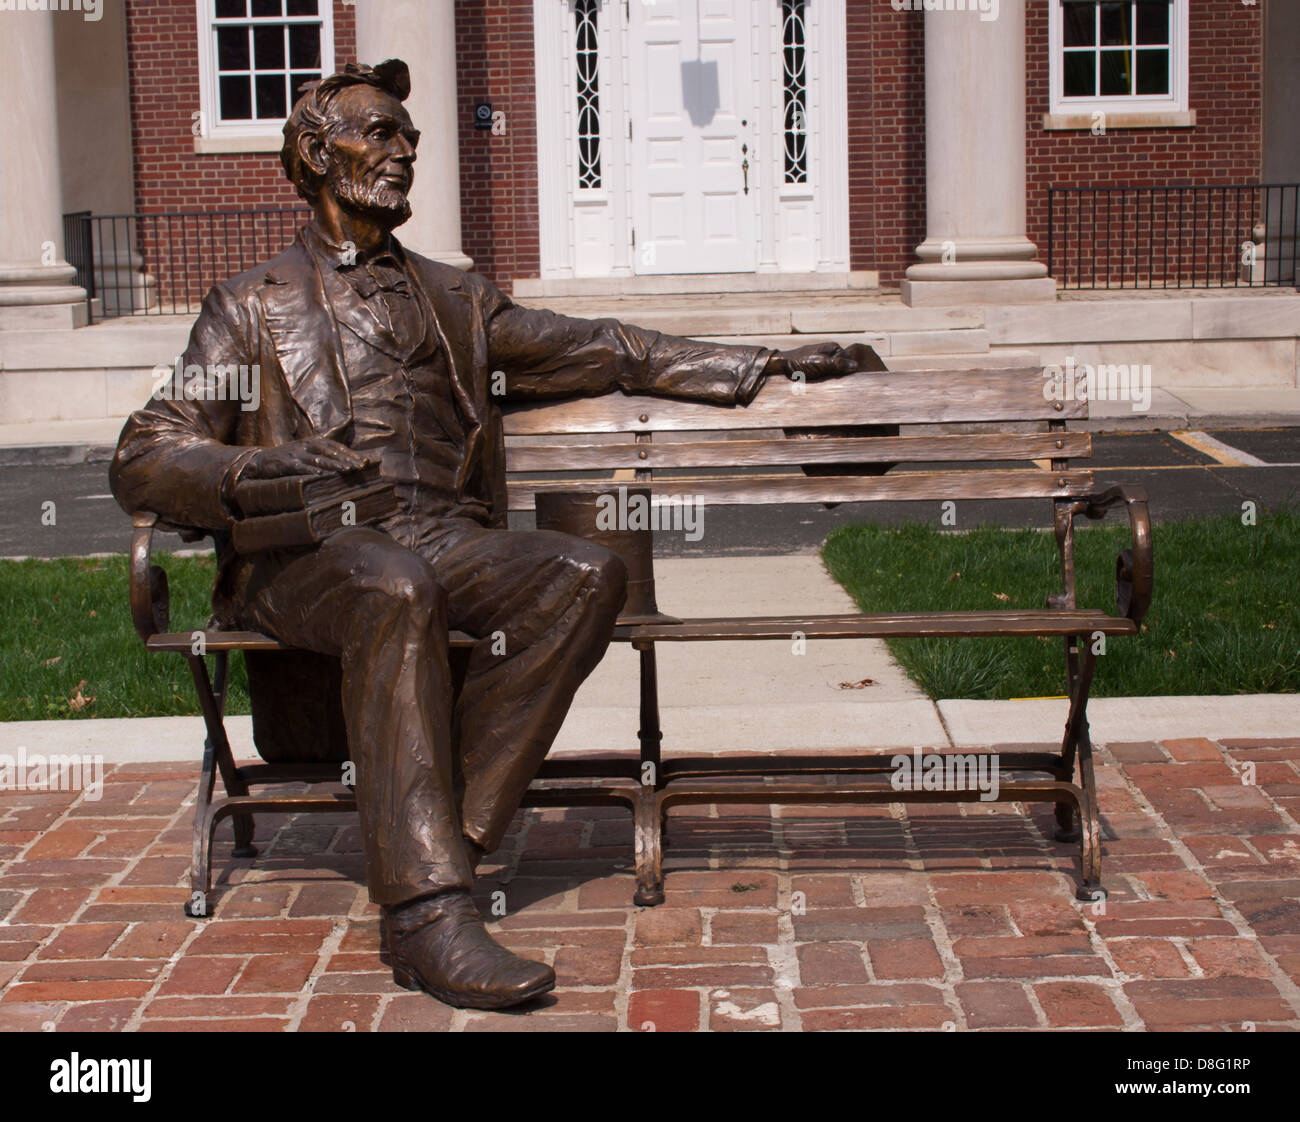 Abraham Lincoln Statue Sitting On A Bench In Bowling Green